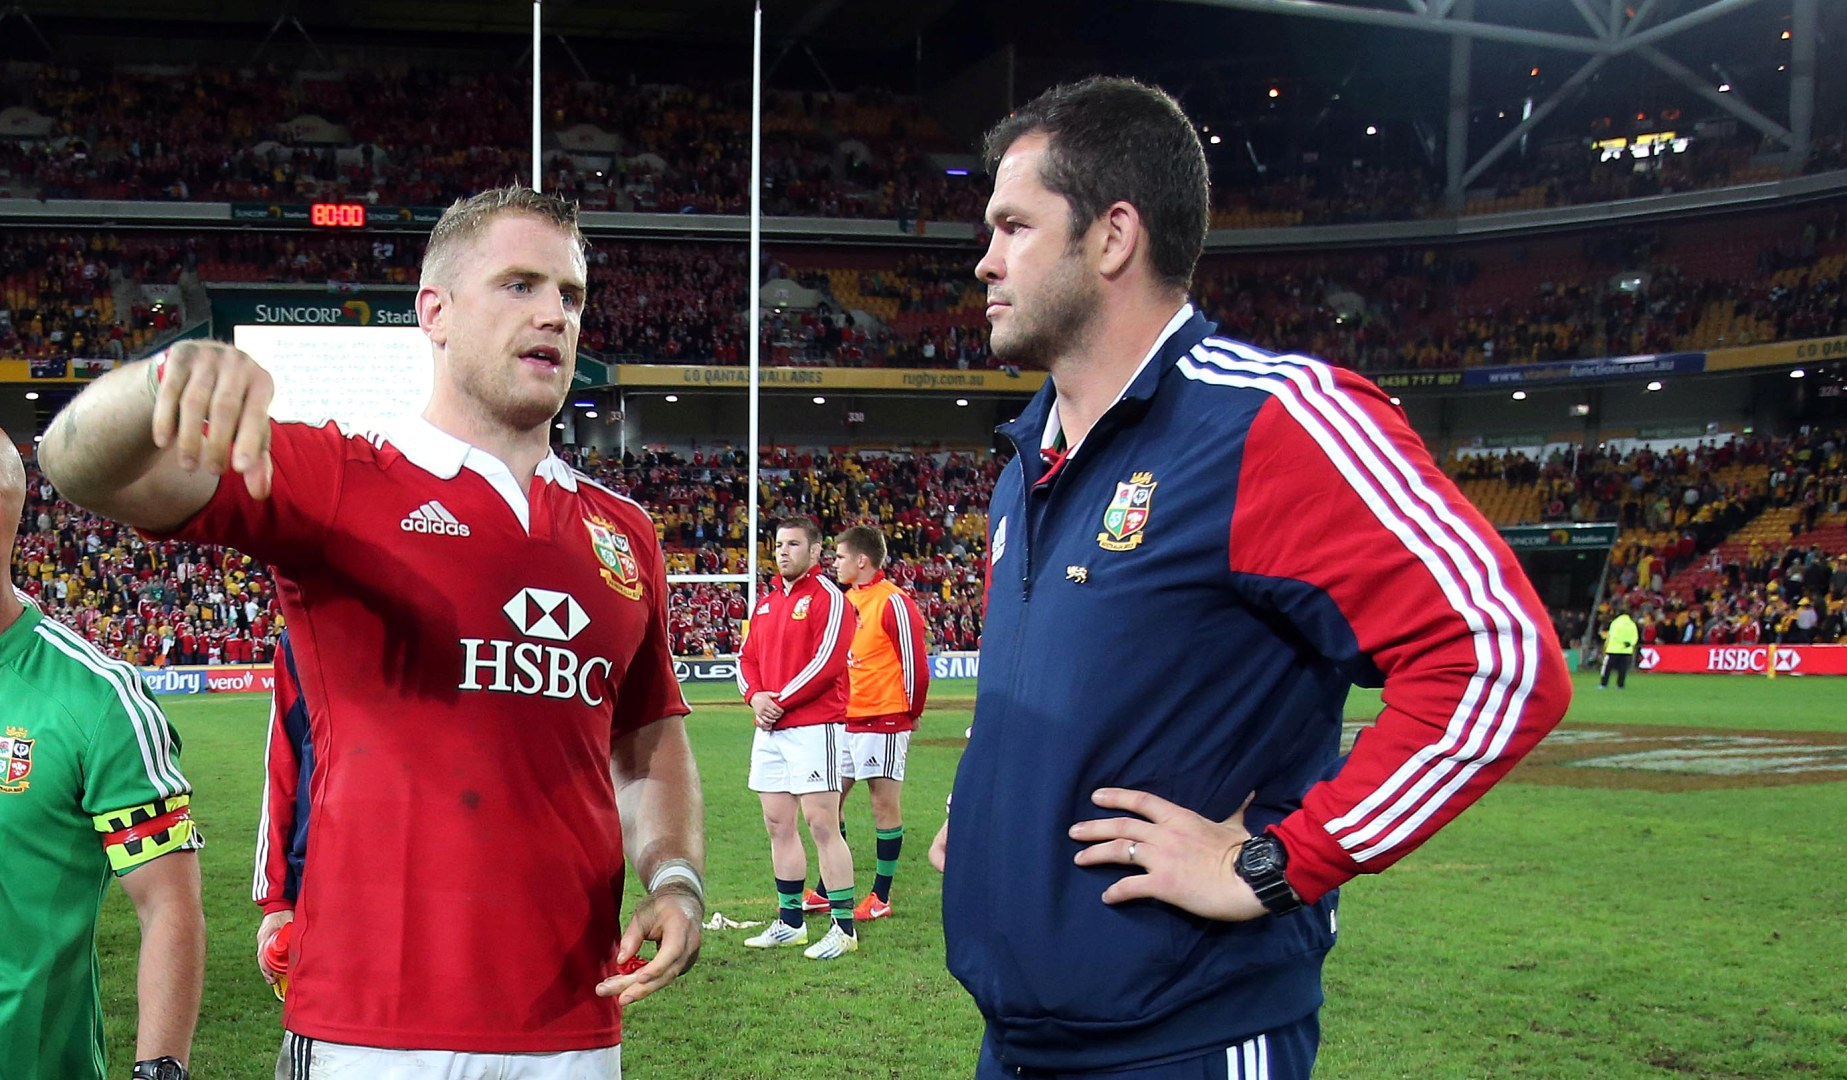 Heaslip excited about reuniting with Farrell